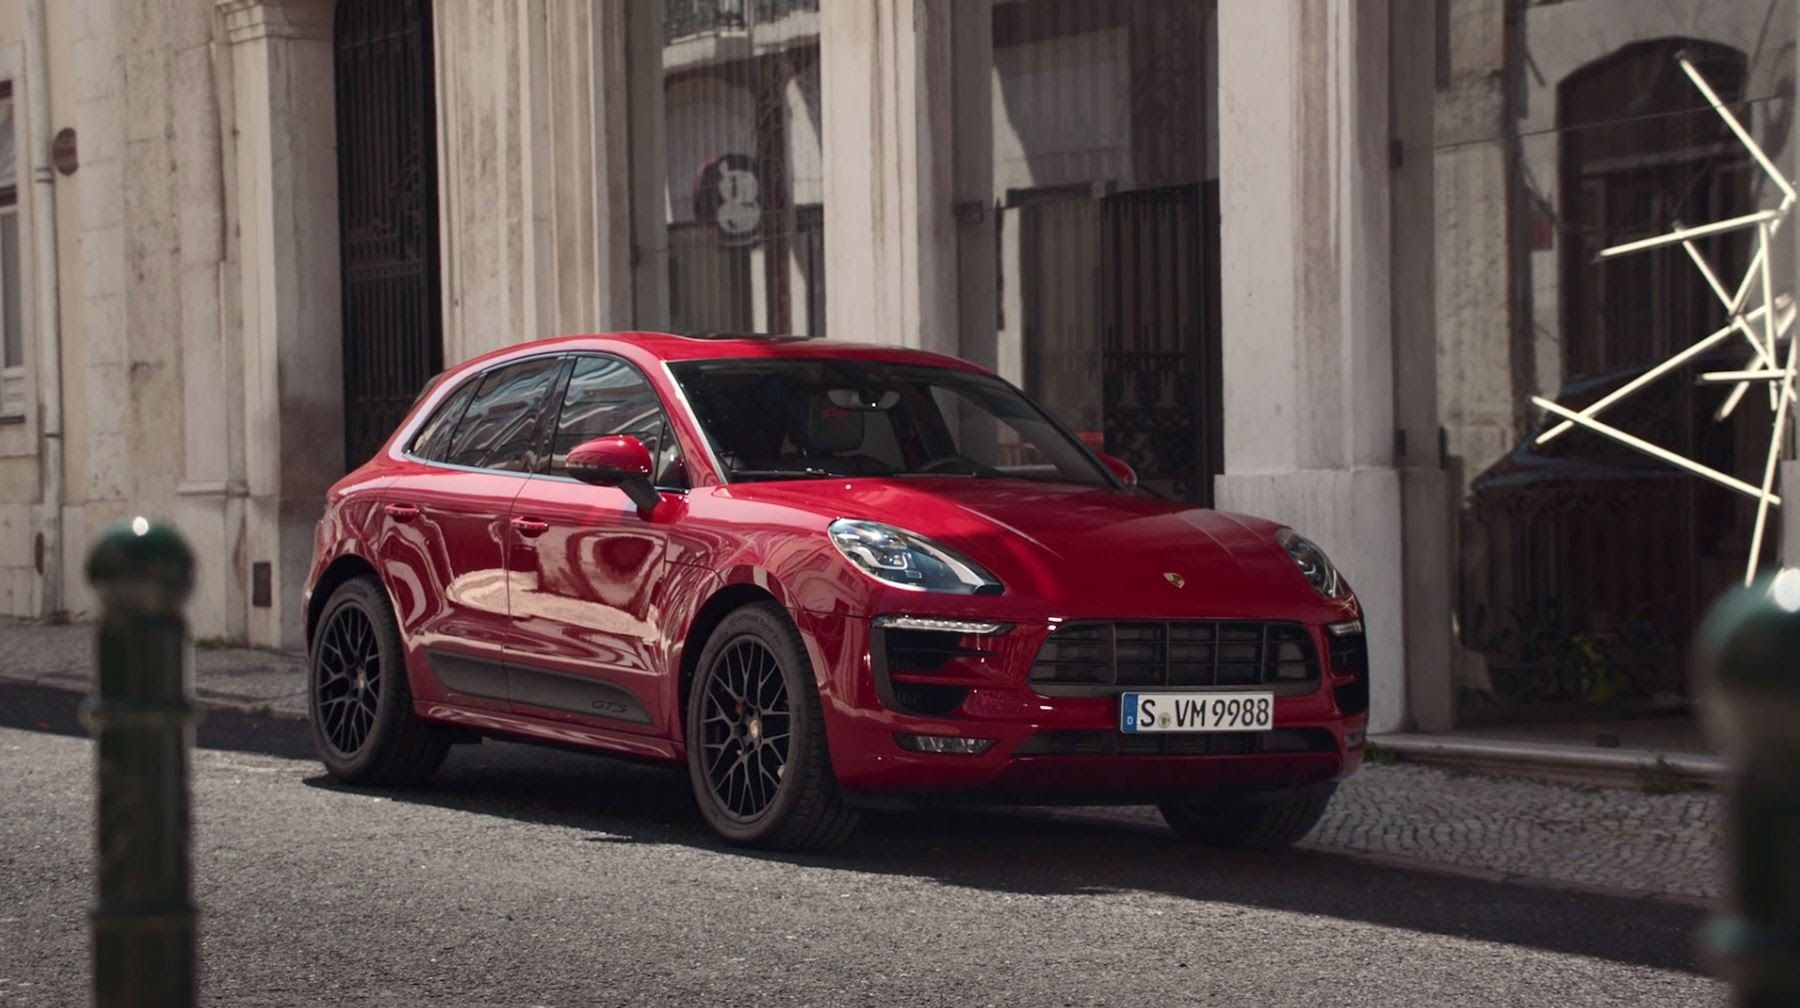 The Remote Services Of The New Macan Gts Porsche Ad Commercial